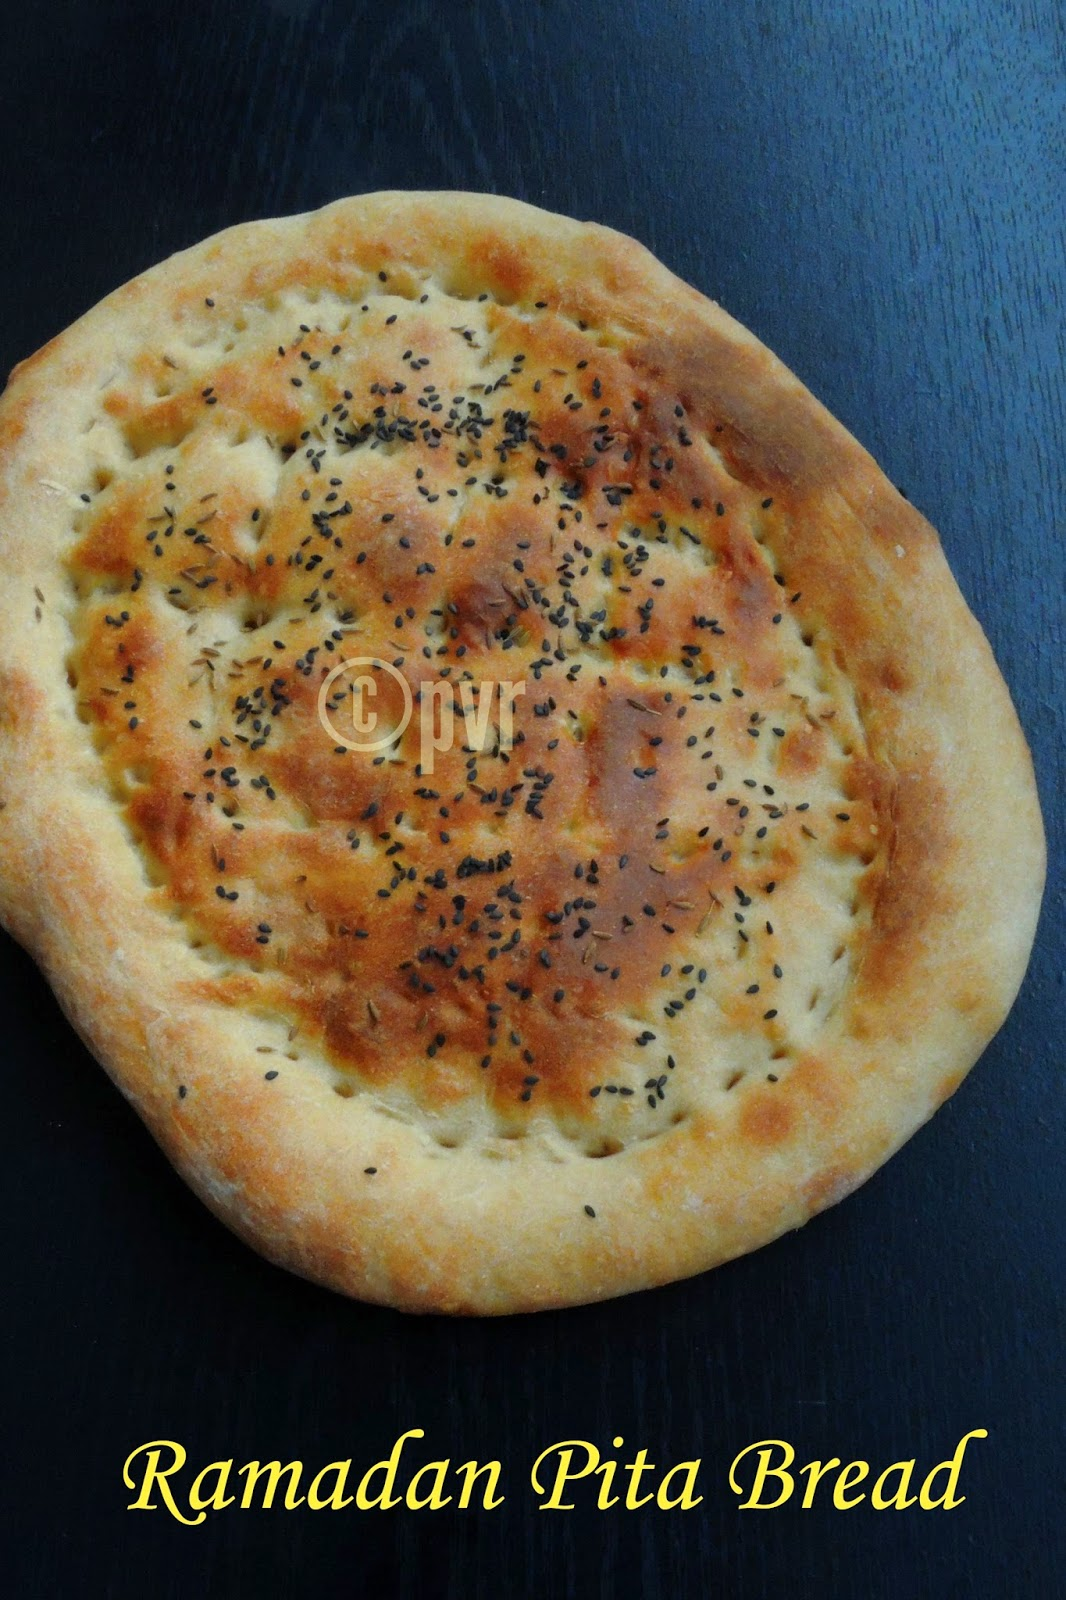 Ramadan Turkish Pita Bread